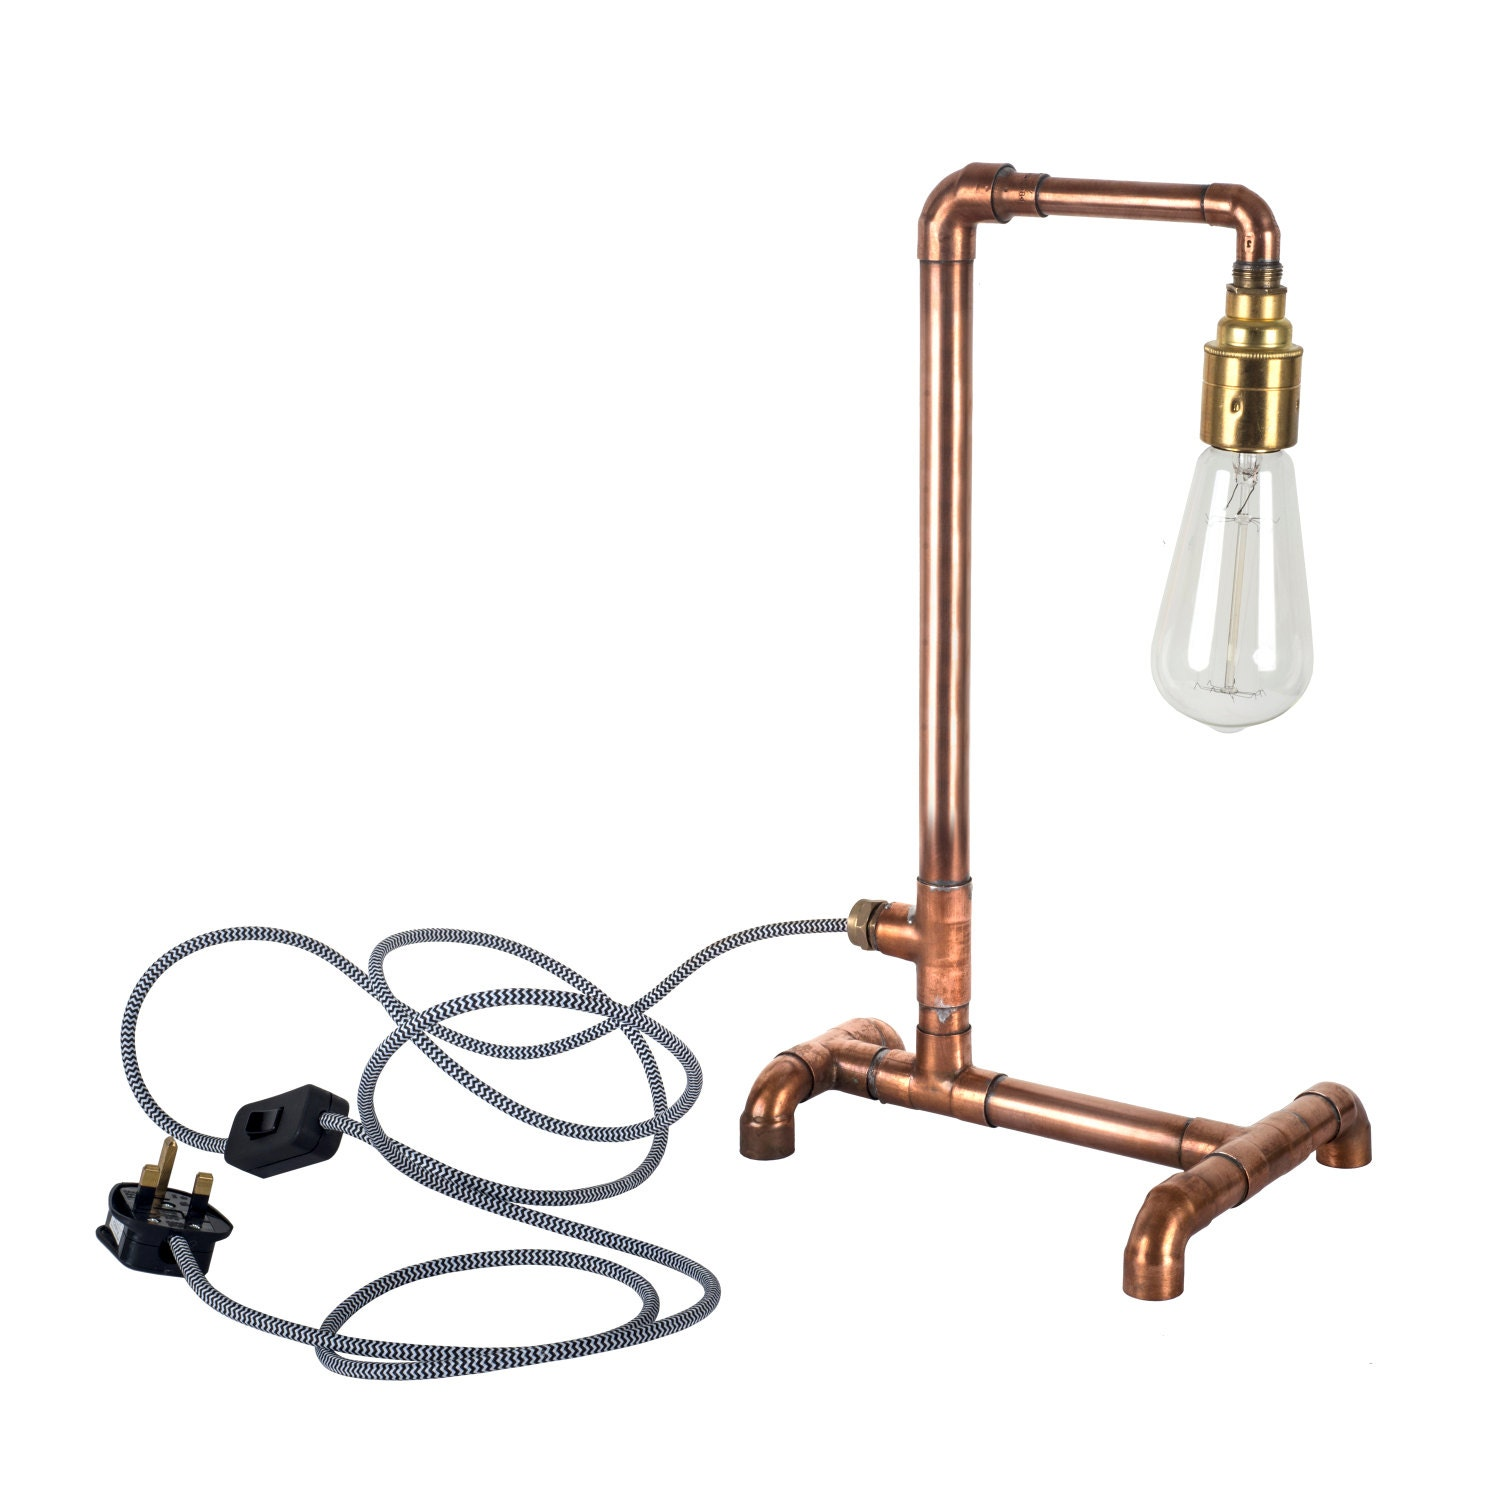 Copper pipe industrial light rustic table lamp e27 by for Table y copper tube